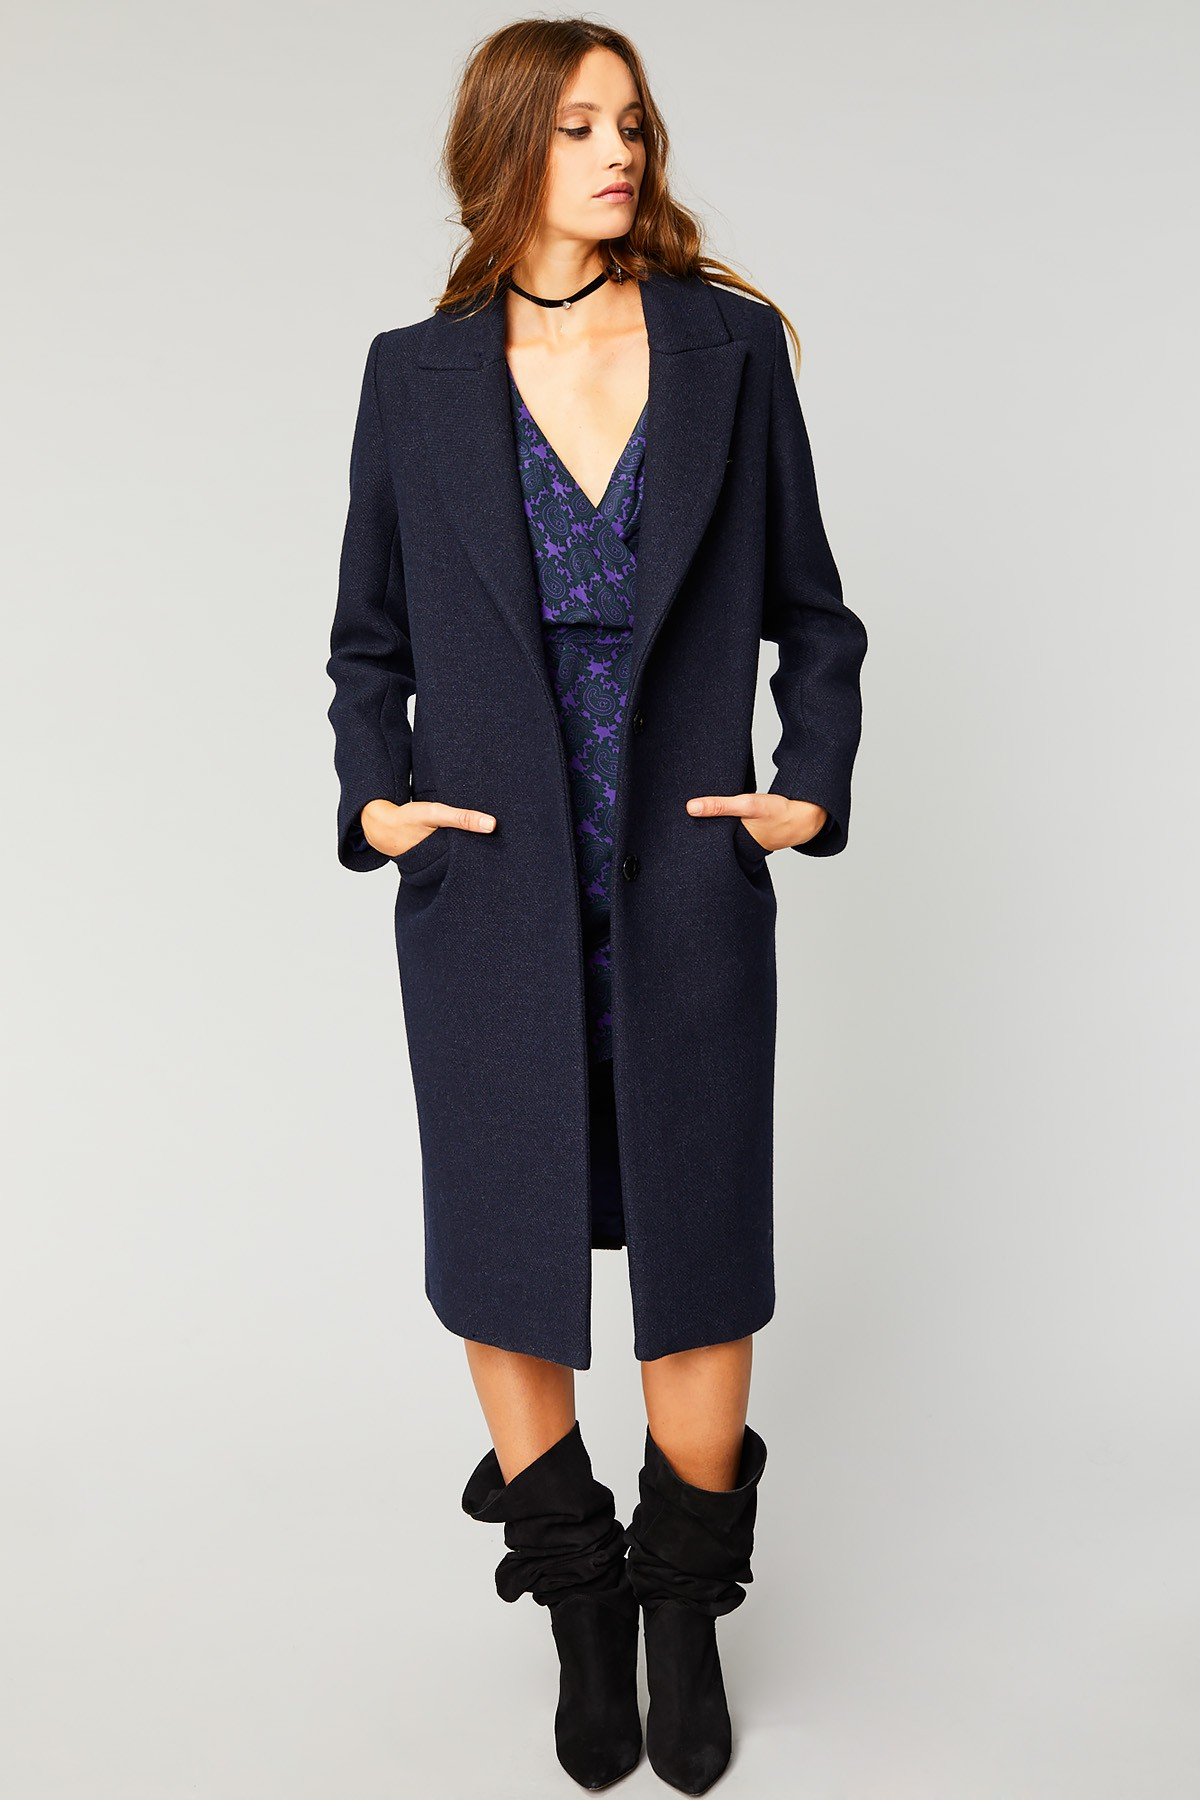 54f5bf6dd049 Manteau long en drap de laine - MORNING